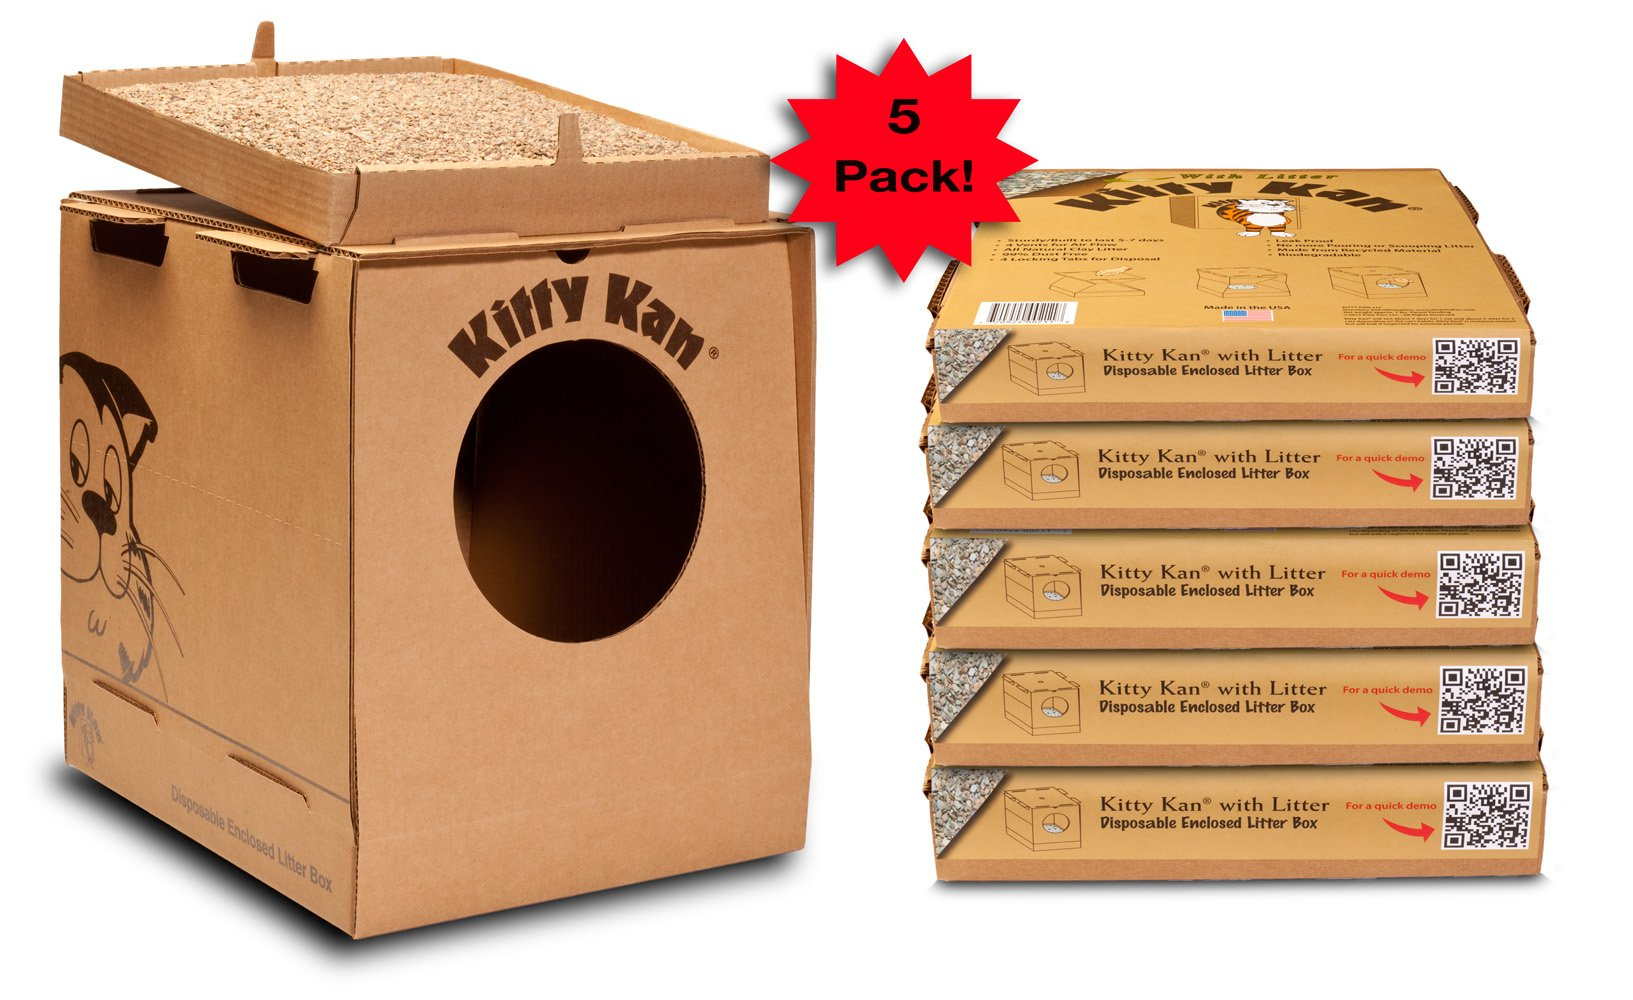 Kitty Kan 5-Pack WITH Litter-Quality Disposable Enclosed Litter Box